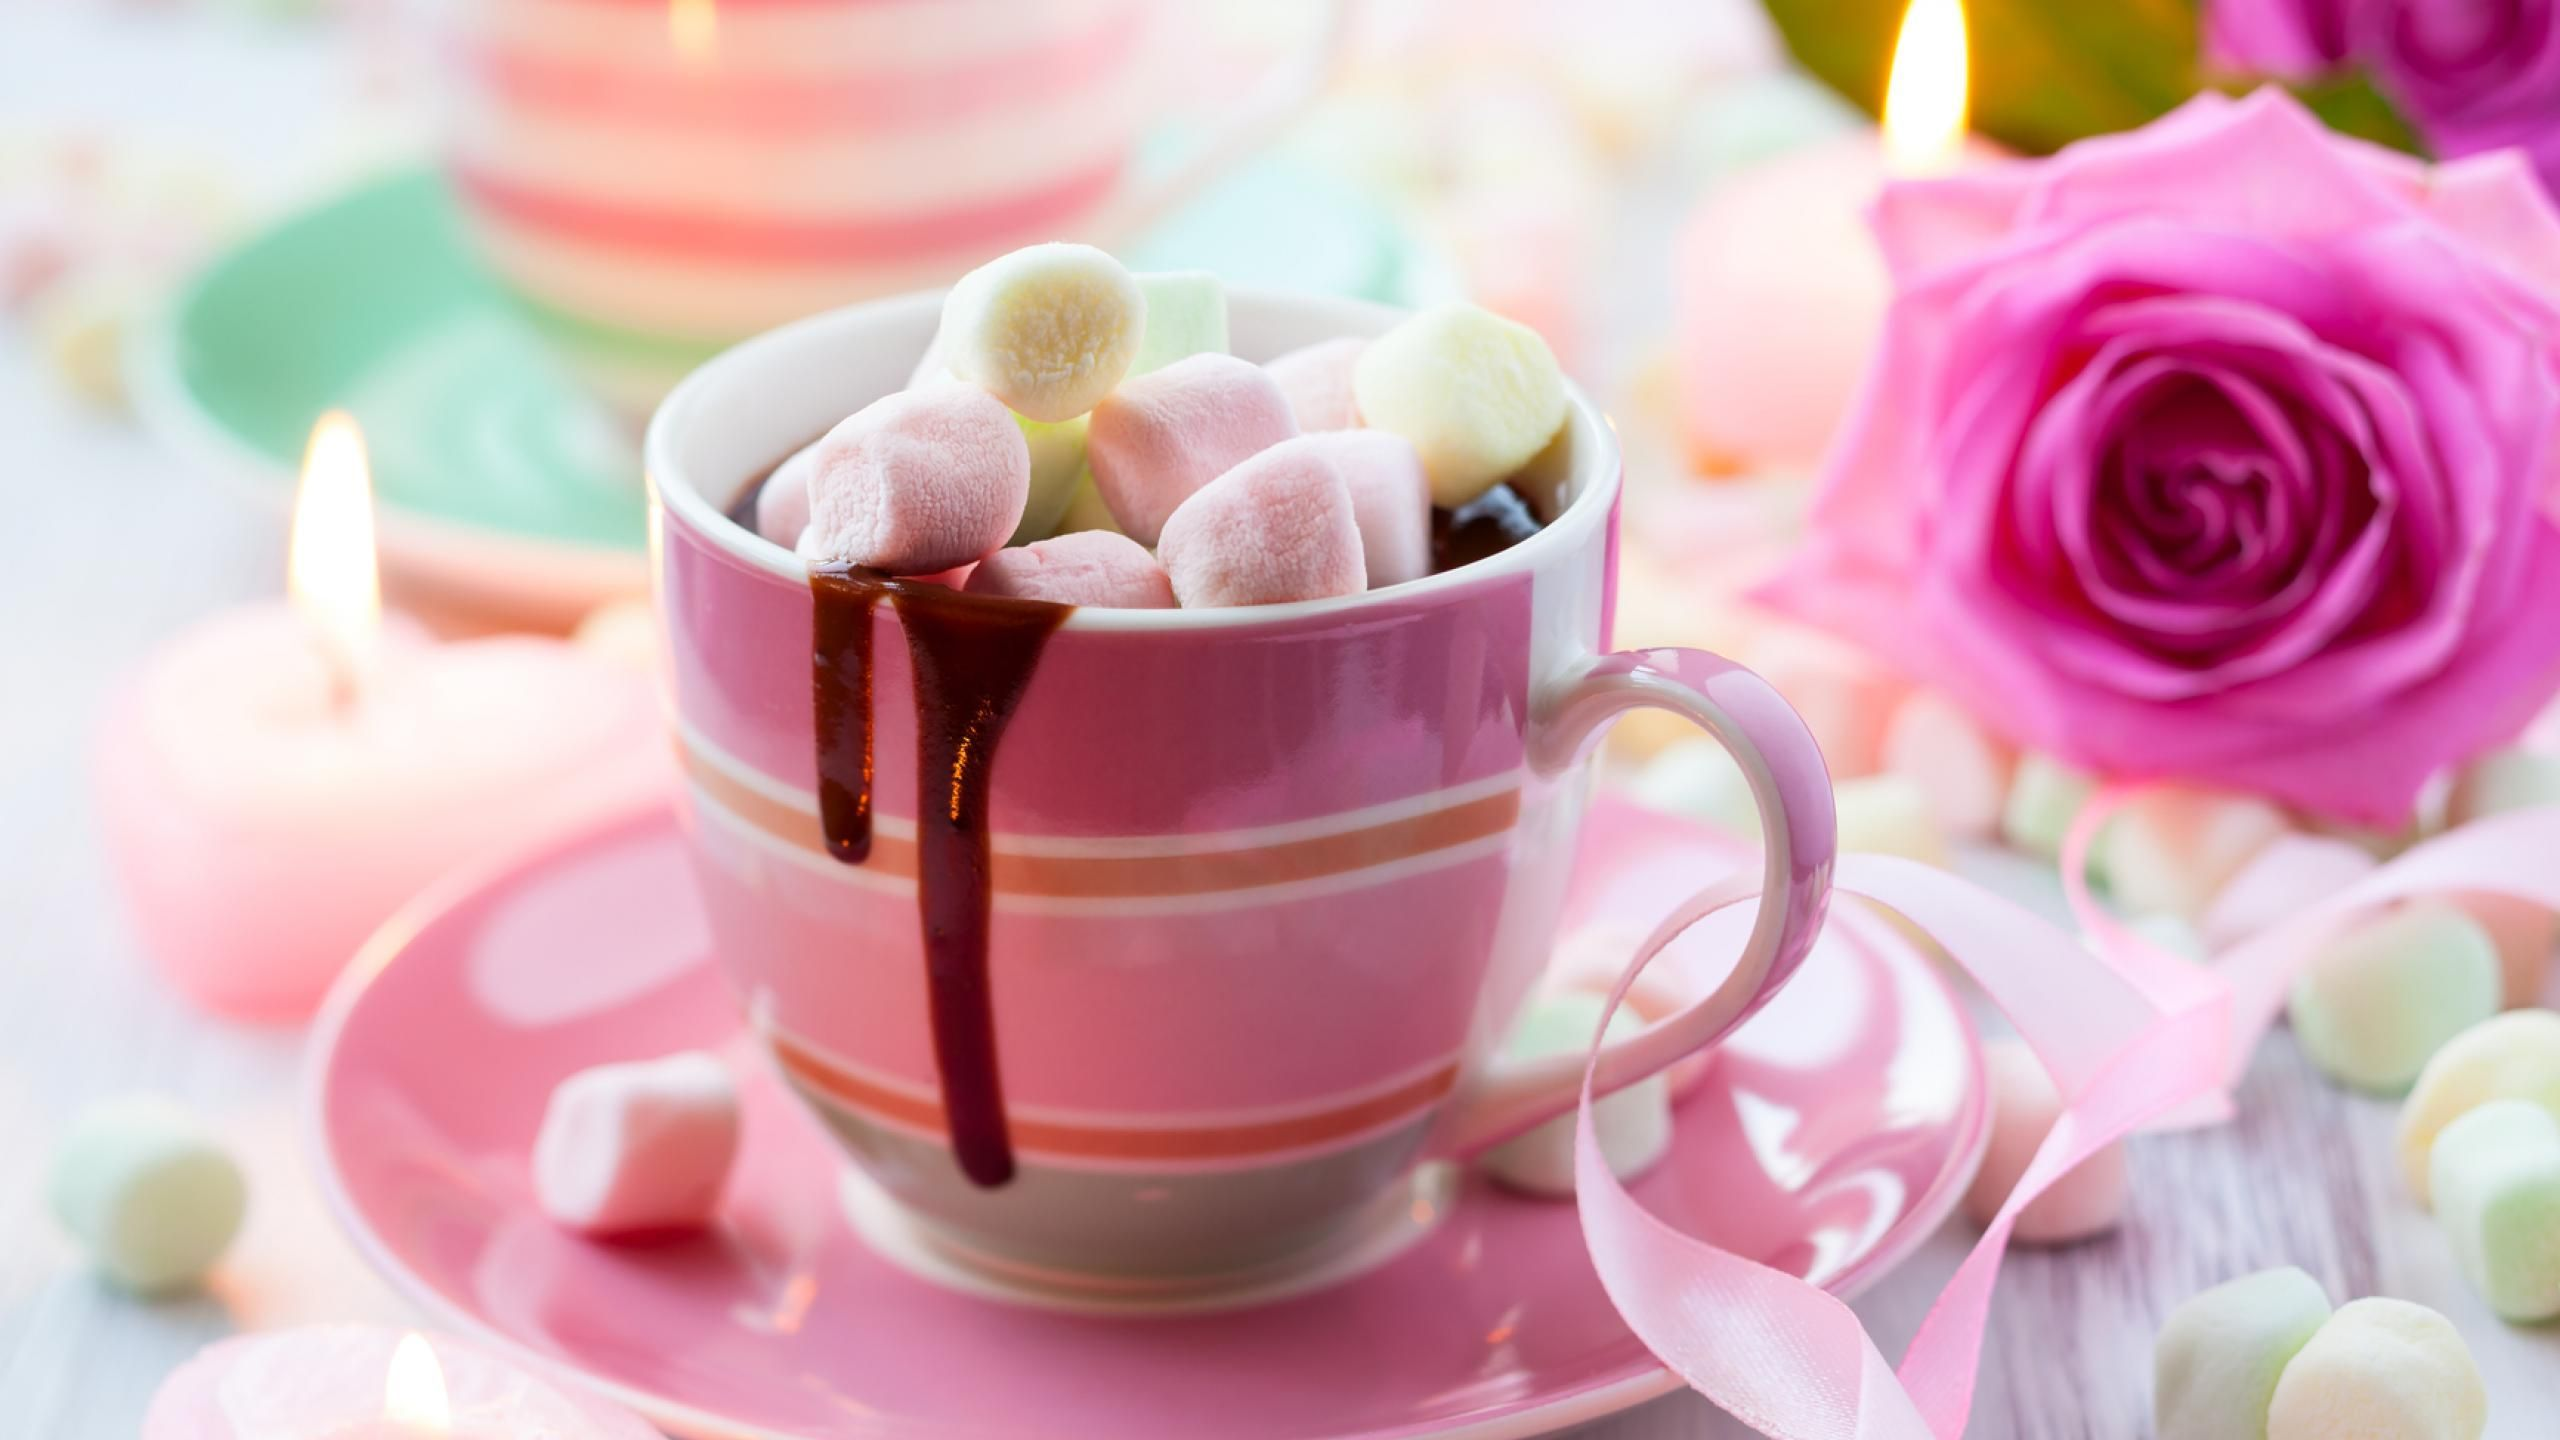 2560x1440 Wallpapers Candy Cute